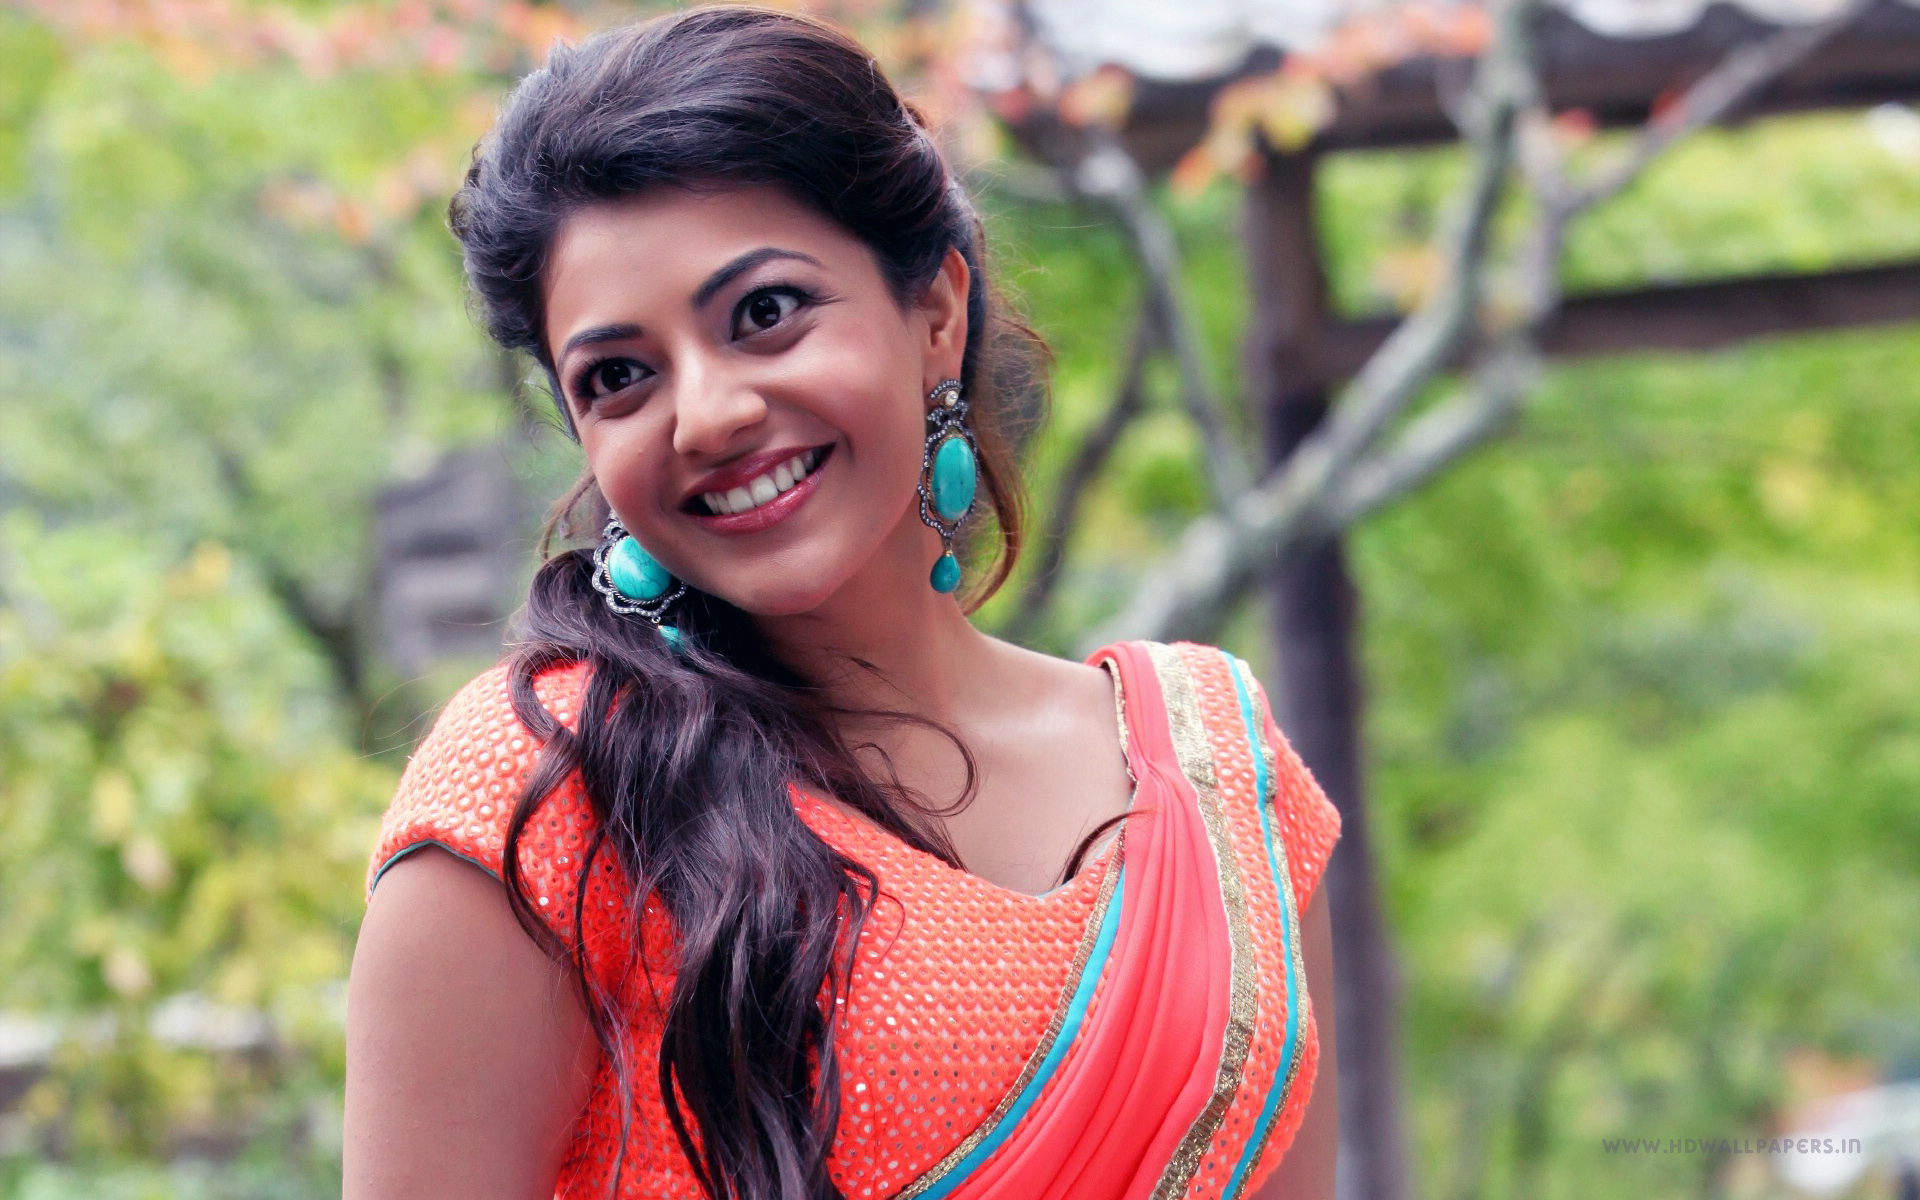 Kajal Hd Wallpapers Kajal 4k Wallpapers For Your Desktop Or Mobile Screen Free And Easy To Download